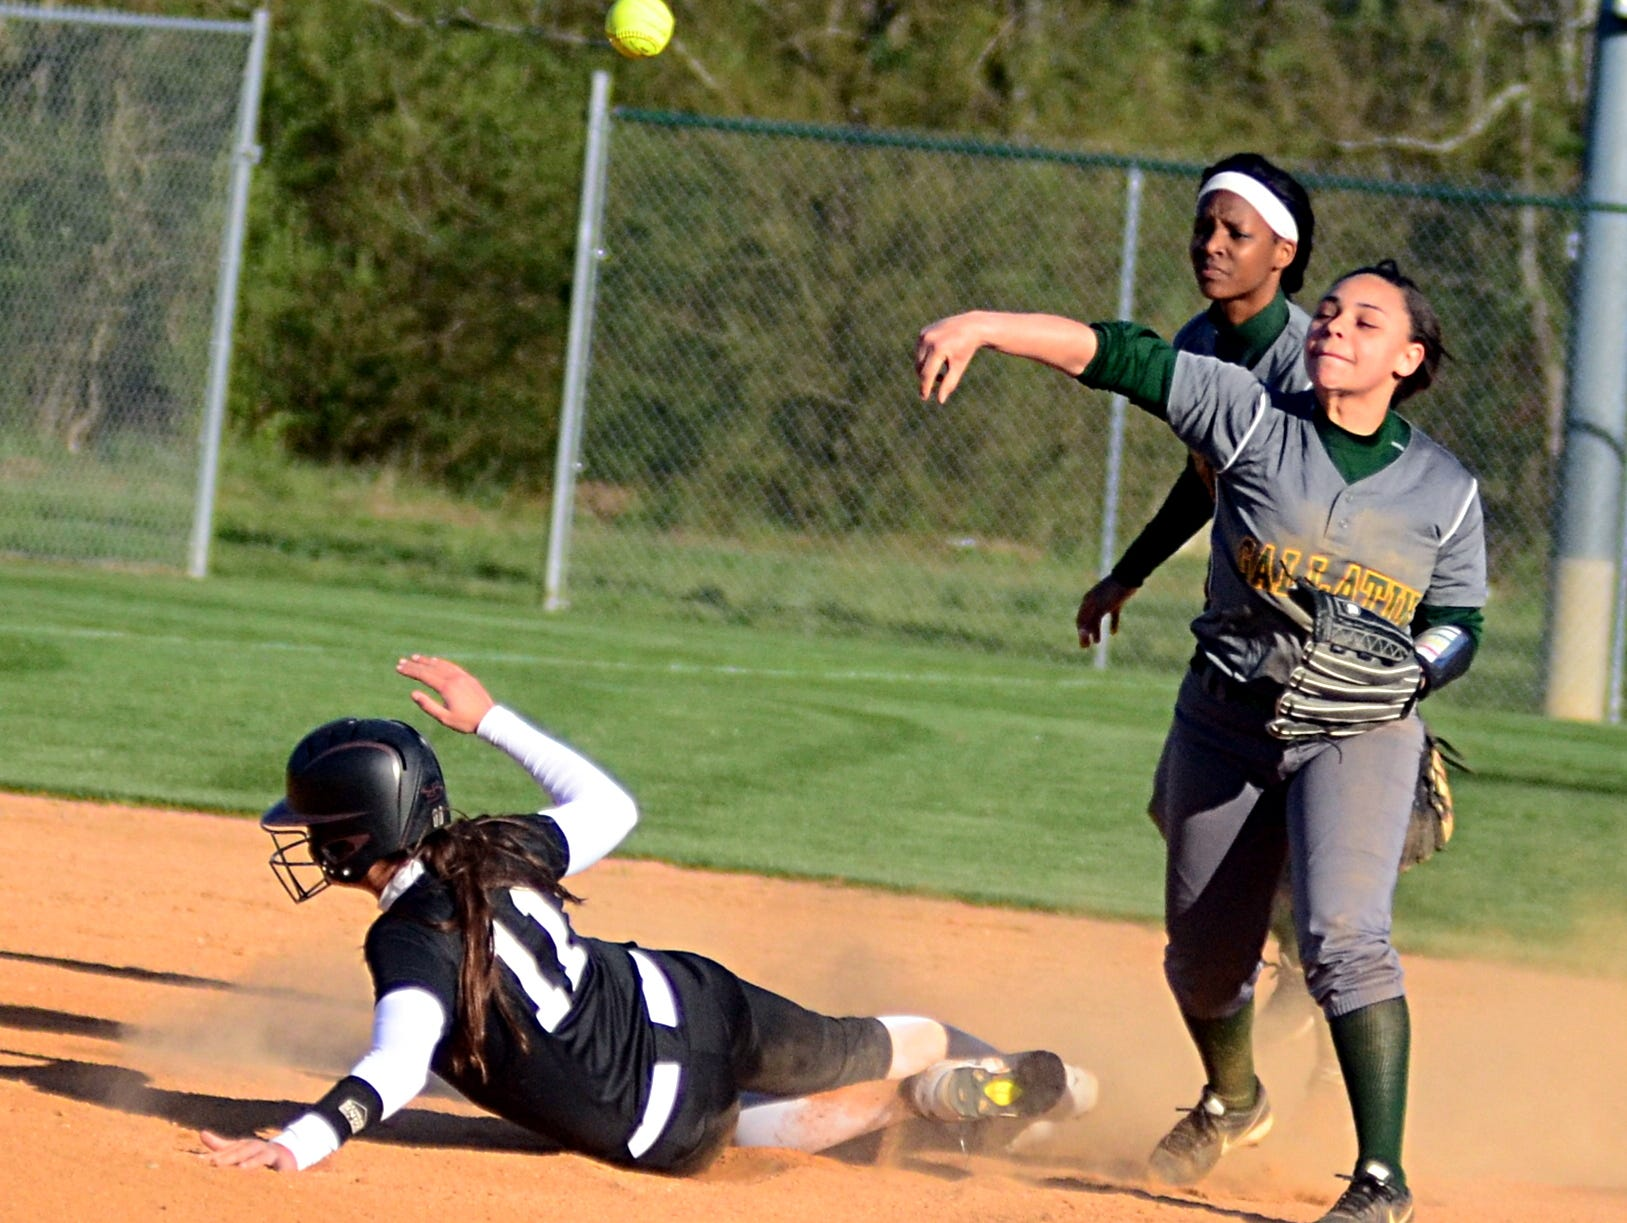 Gallatin High junior second baseman Ashlee Banks throws to first base as Station Camp senior Taylor Gaines slides safely into second base during first-inning action. Banks had one hit in the Lady Wave's 12-4 loss.